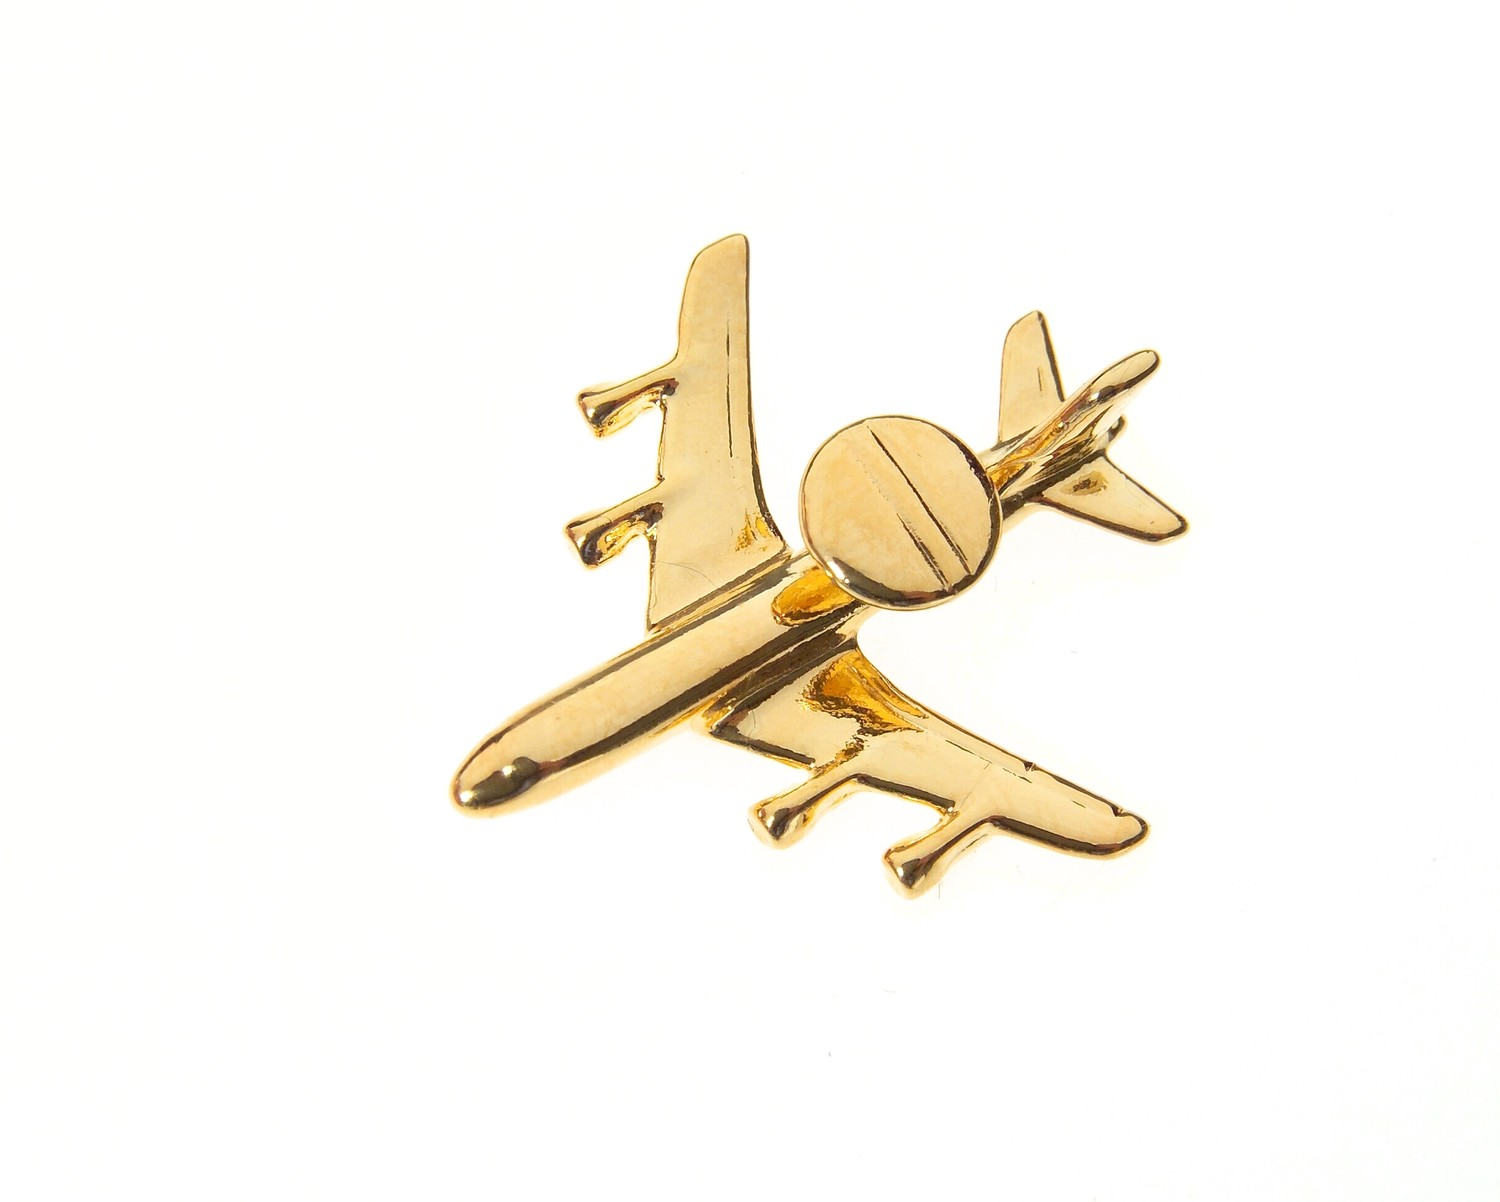 E3-A Sentry Gold Plated Tie / Lapel Pin